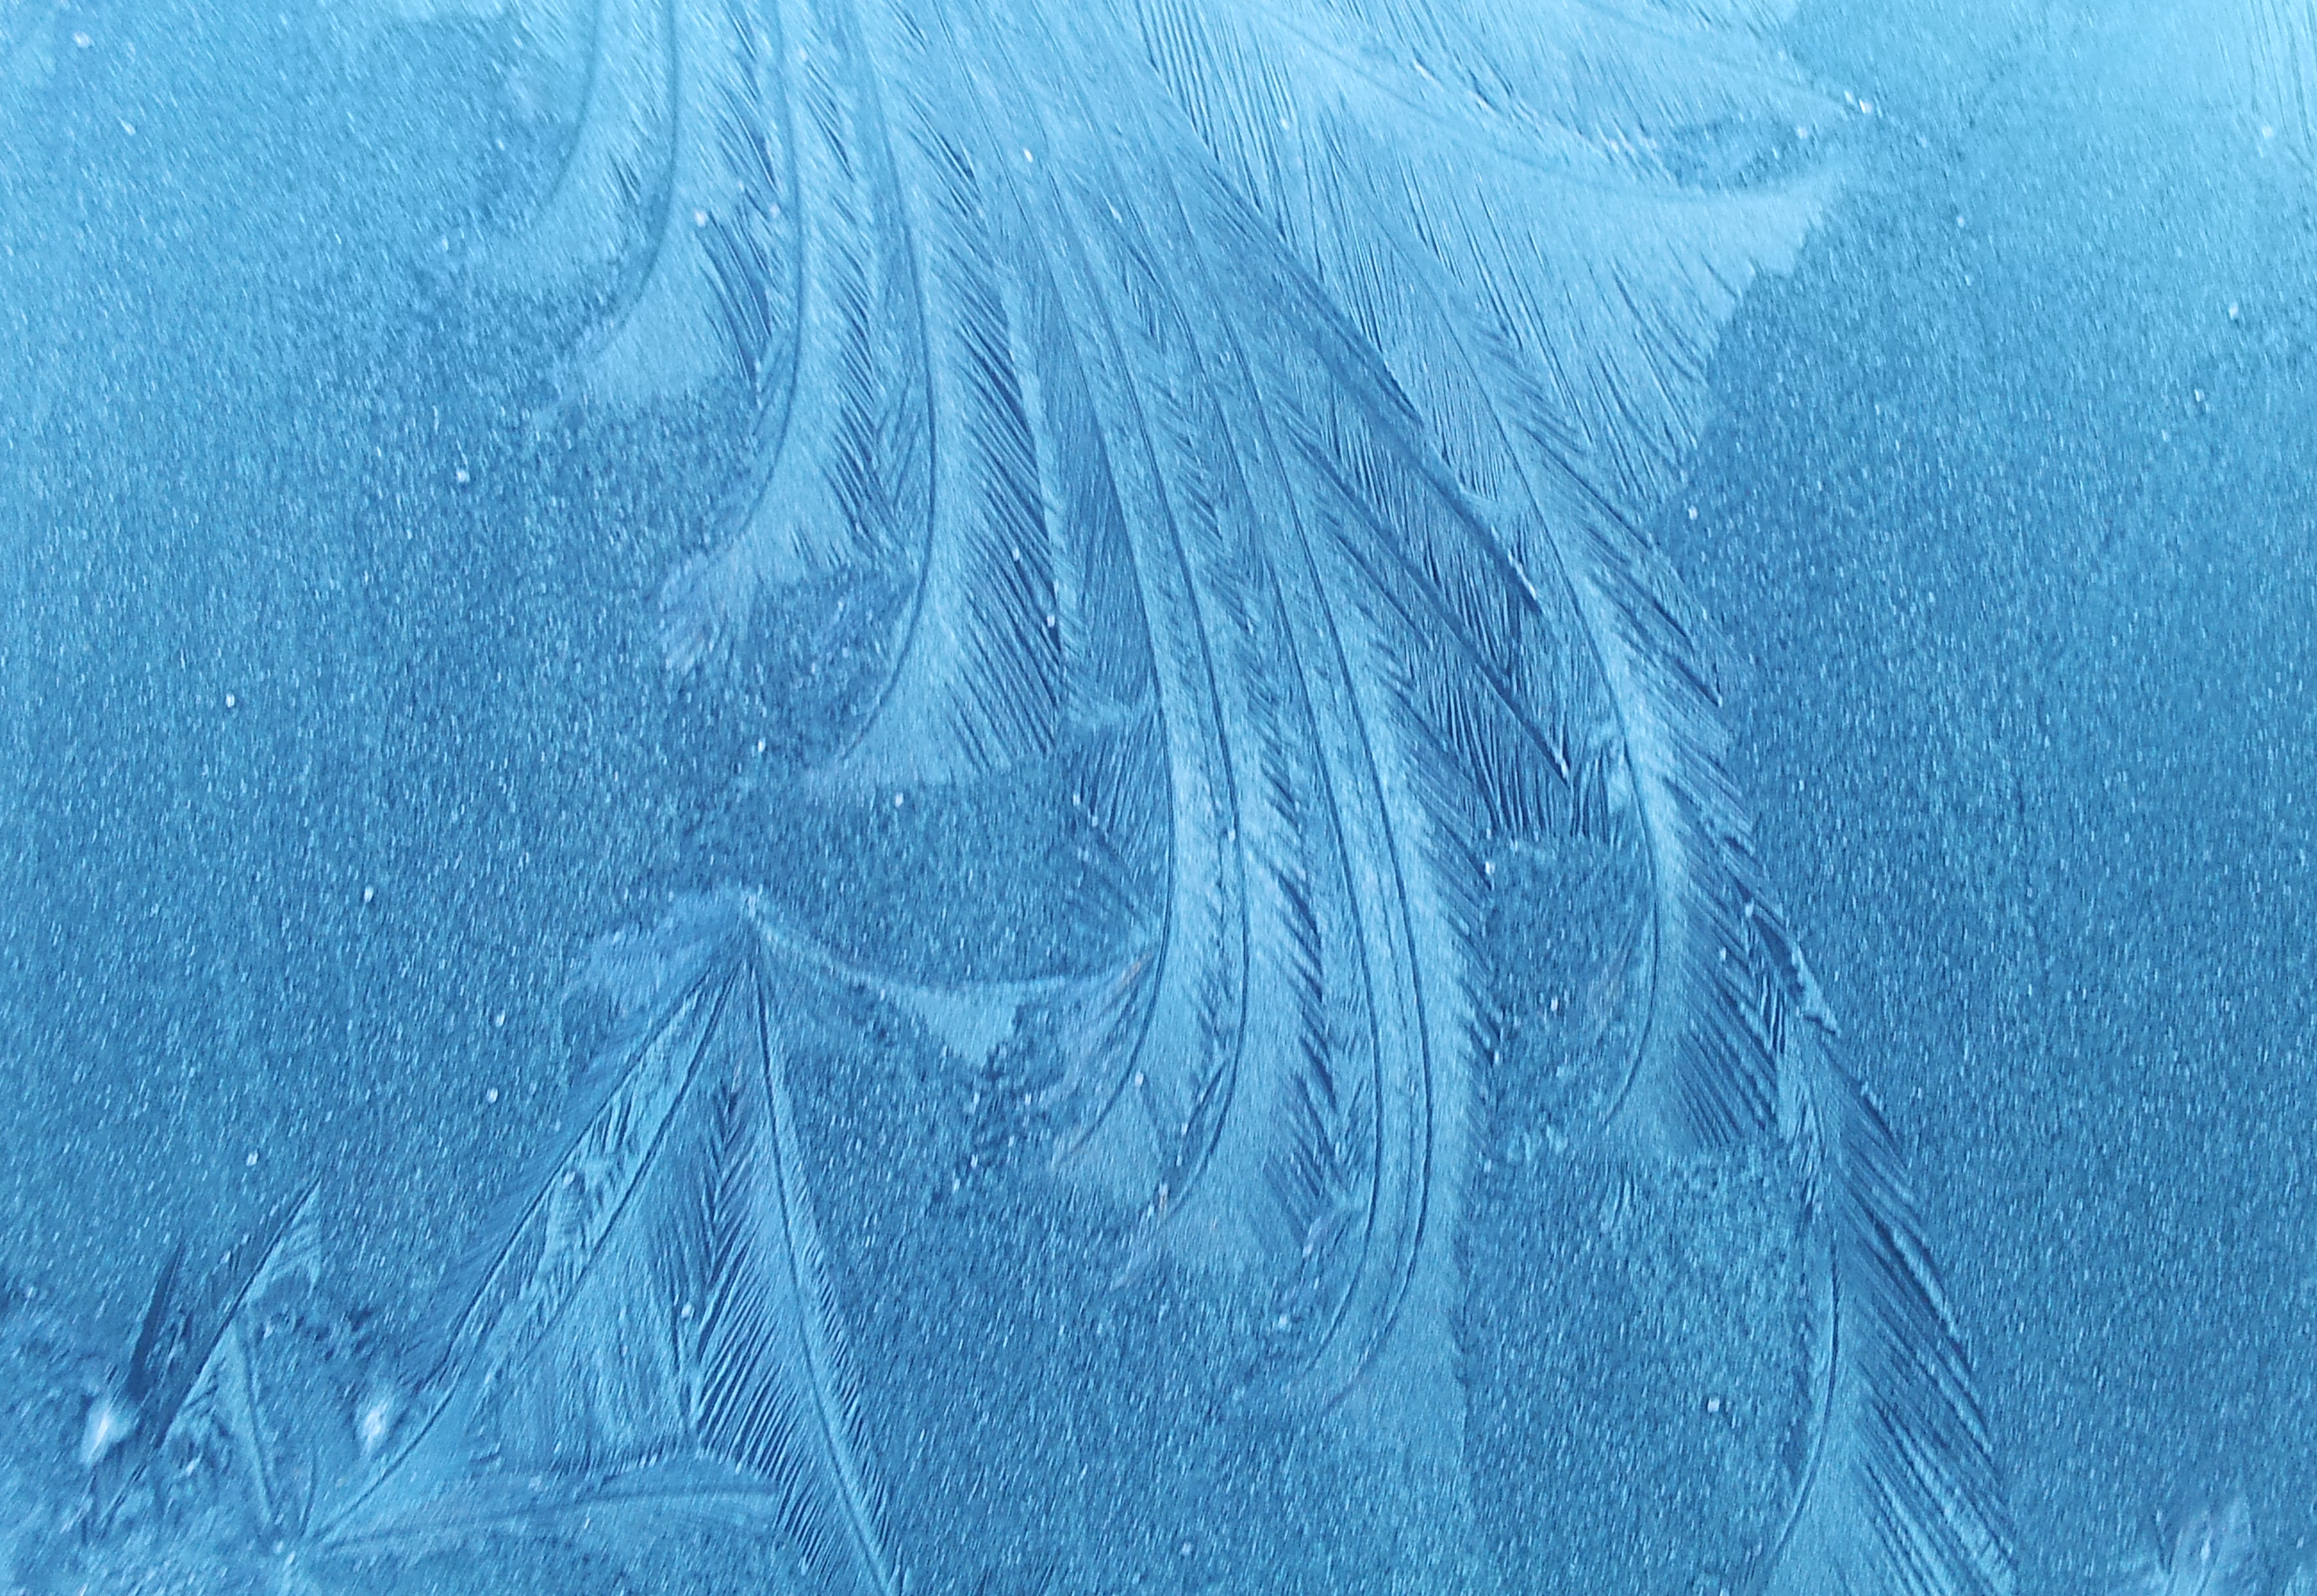 File:Frost.